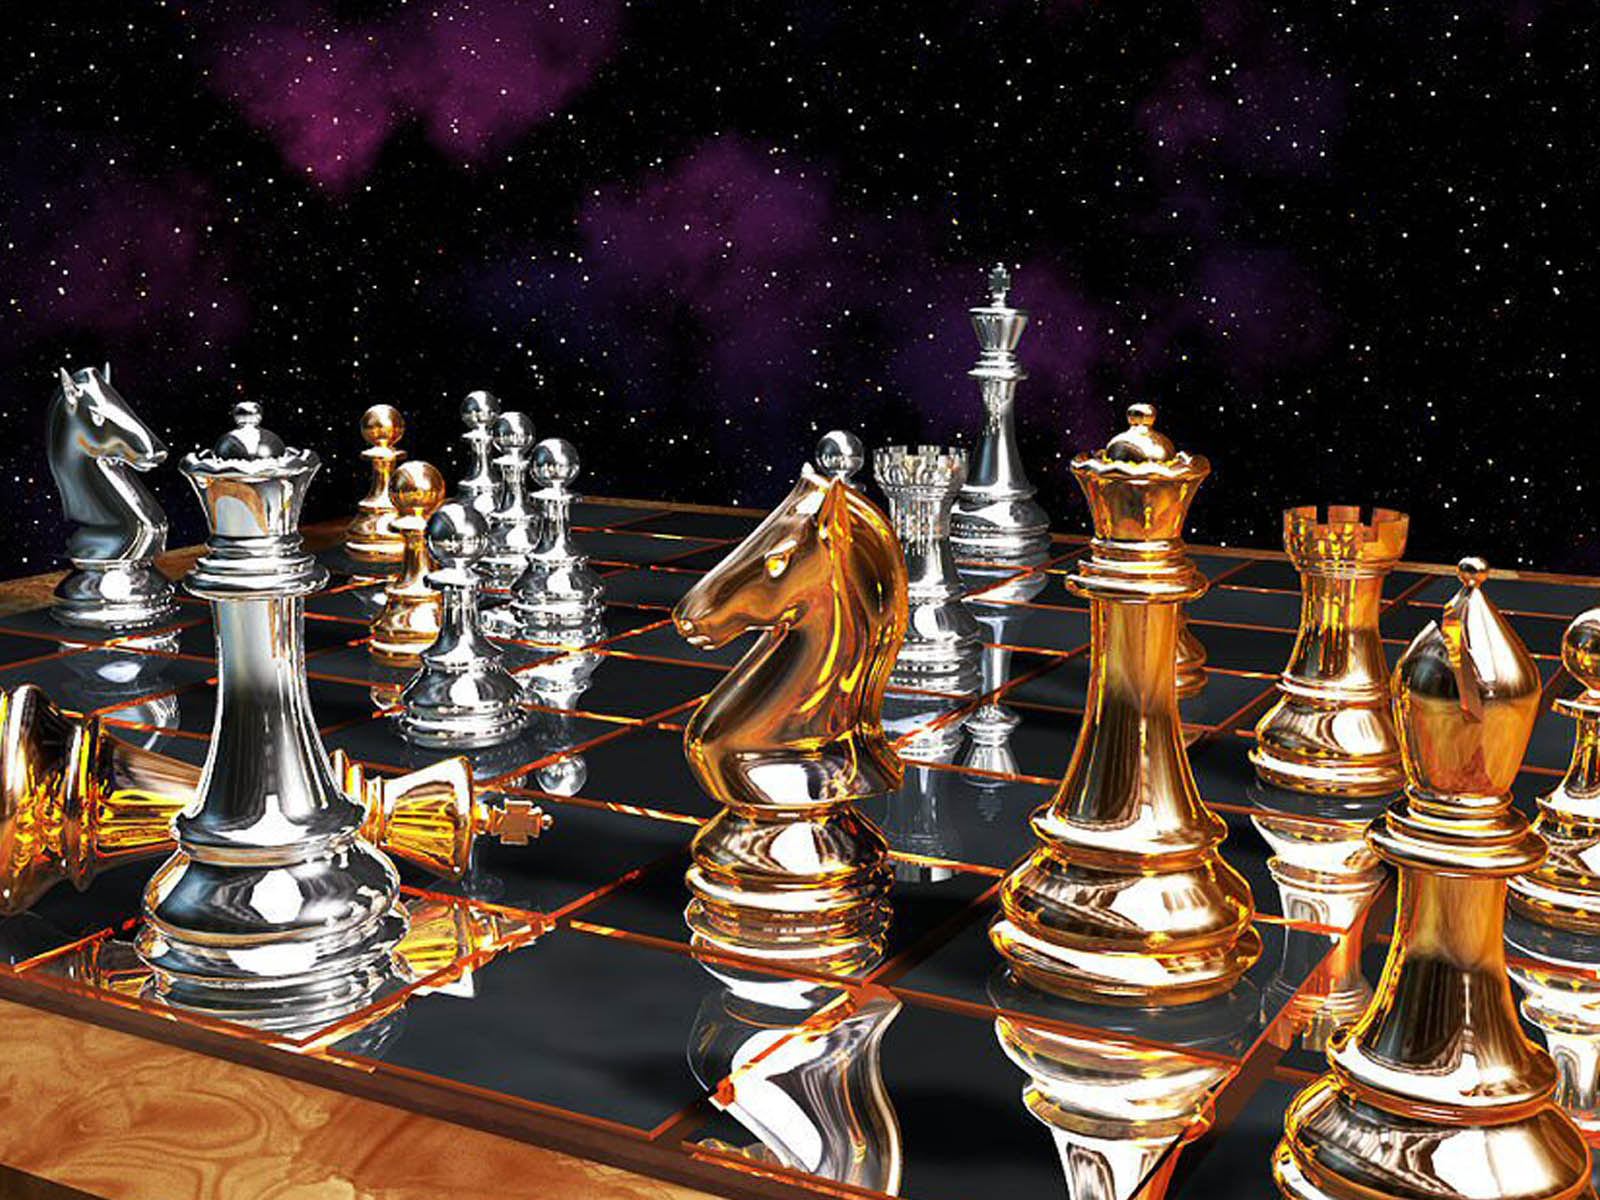 Chess Wallpaper Widescreen - WallpaperSafari